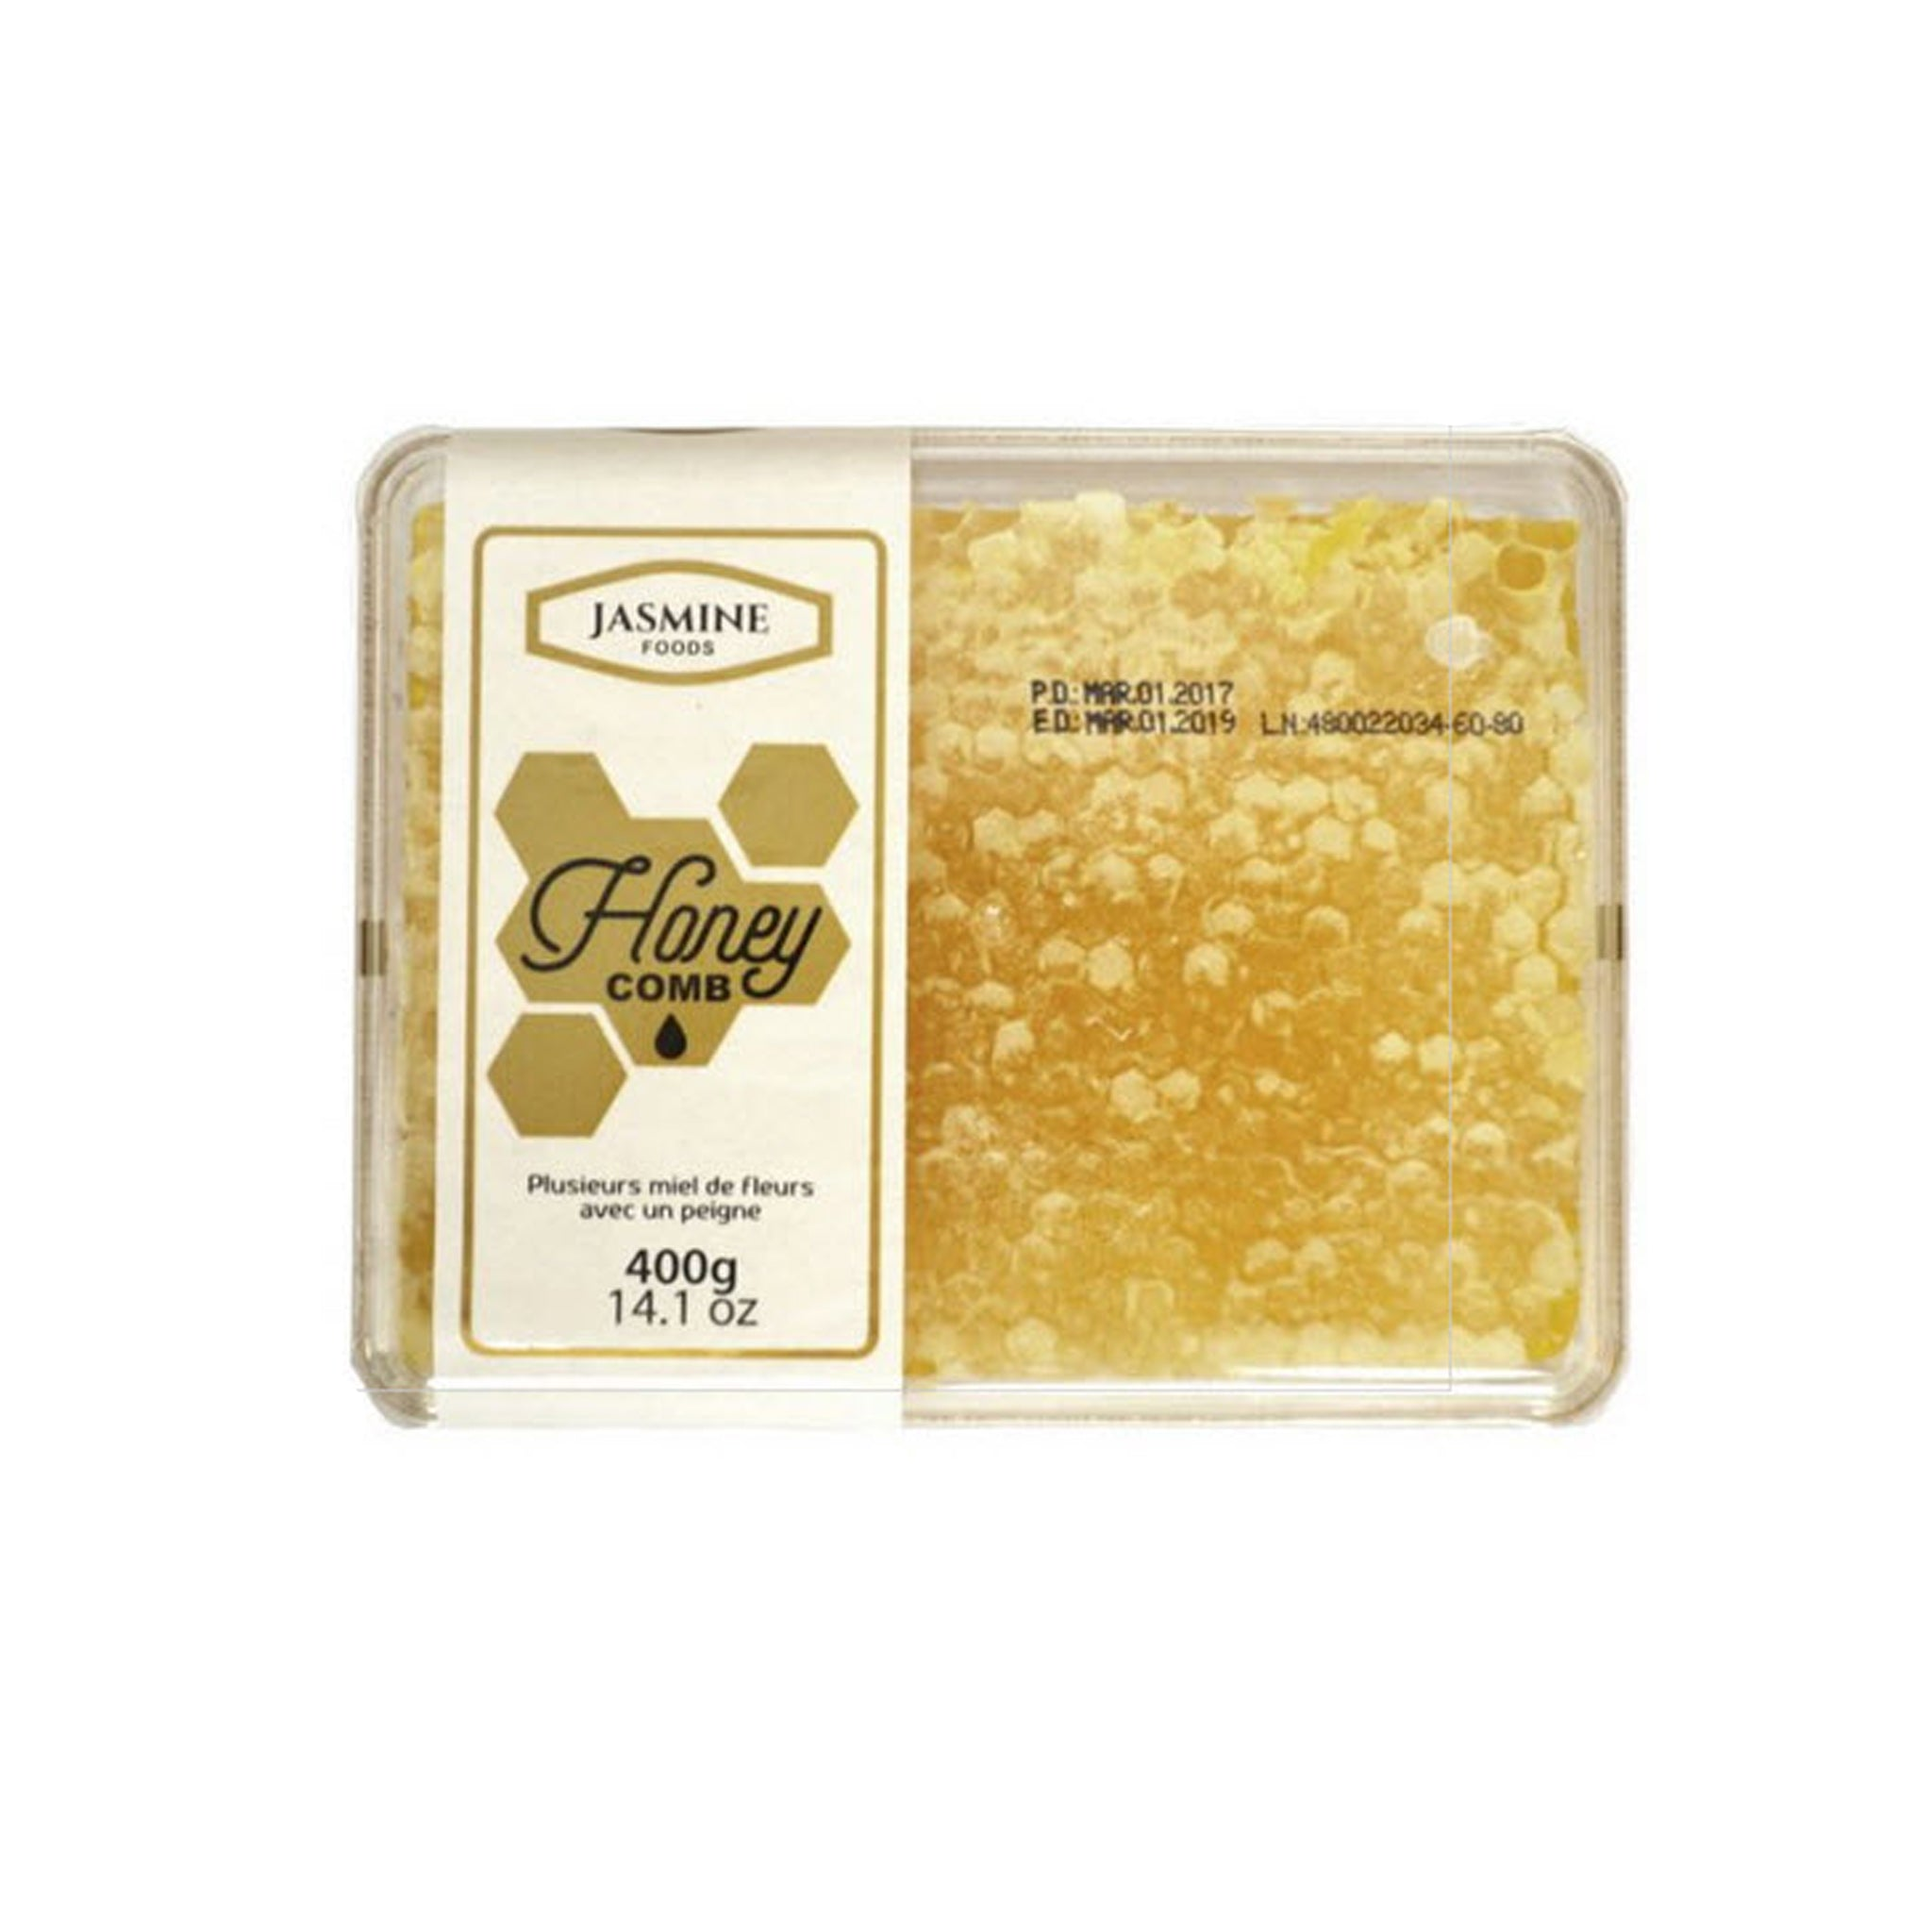 Jasmine Honey Plate Comb 400g